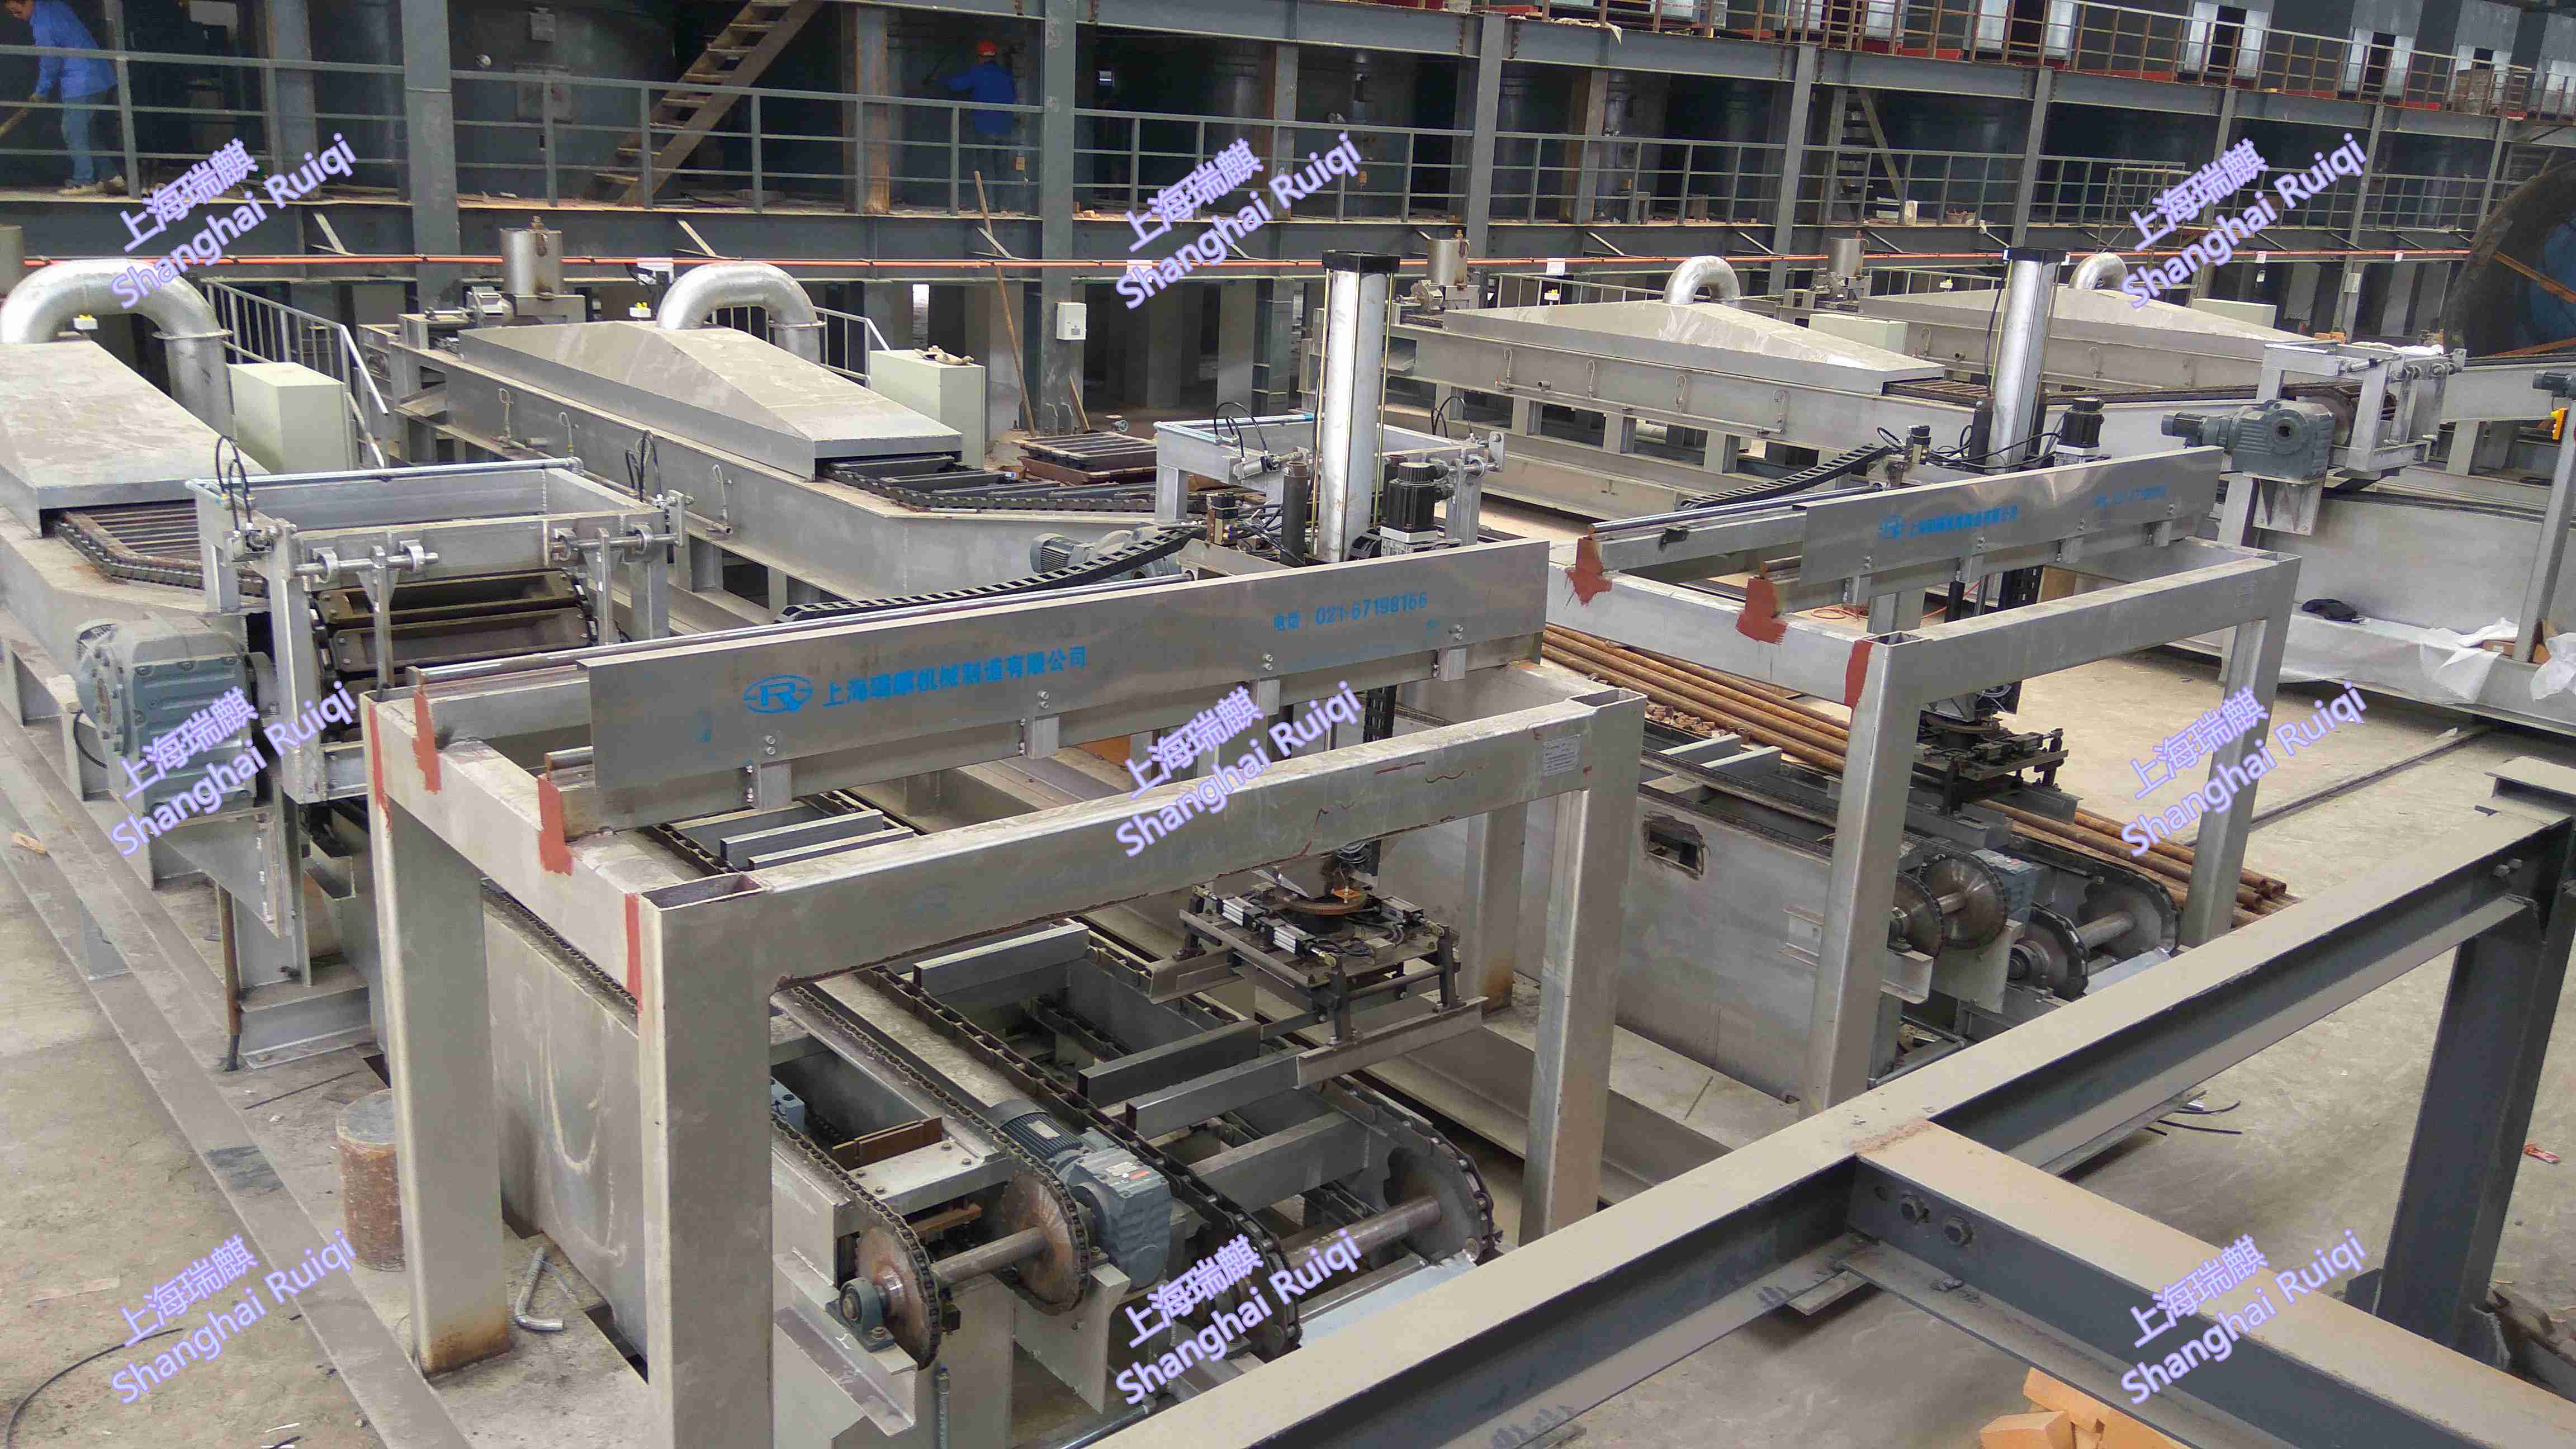 movable type lead ingot casting and stacking machine/ CONVEYOR/ CASTER/ STACKER